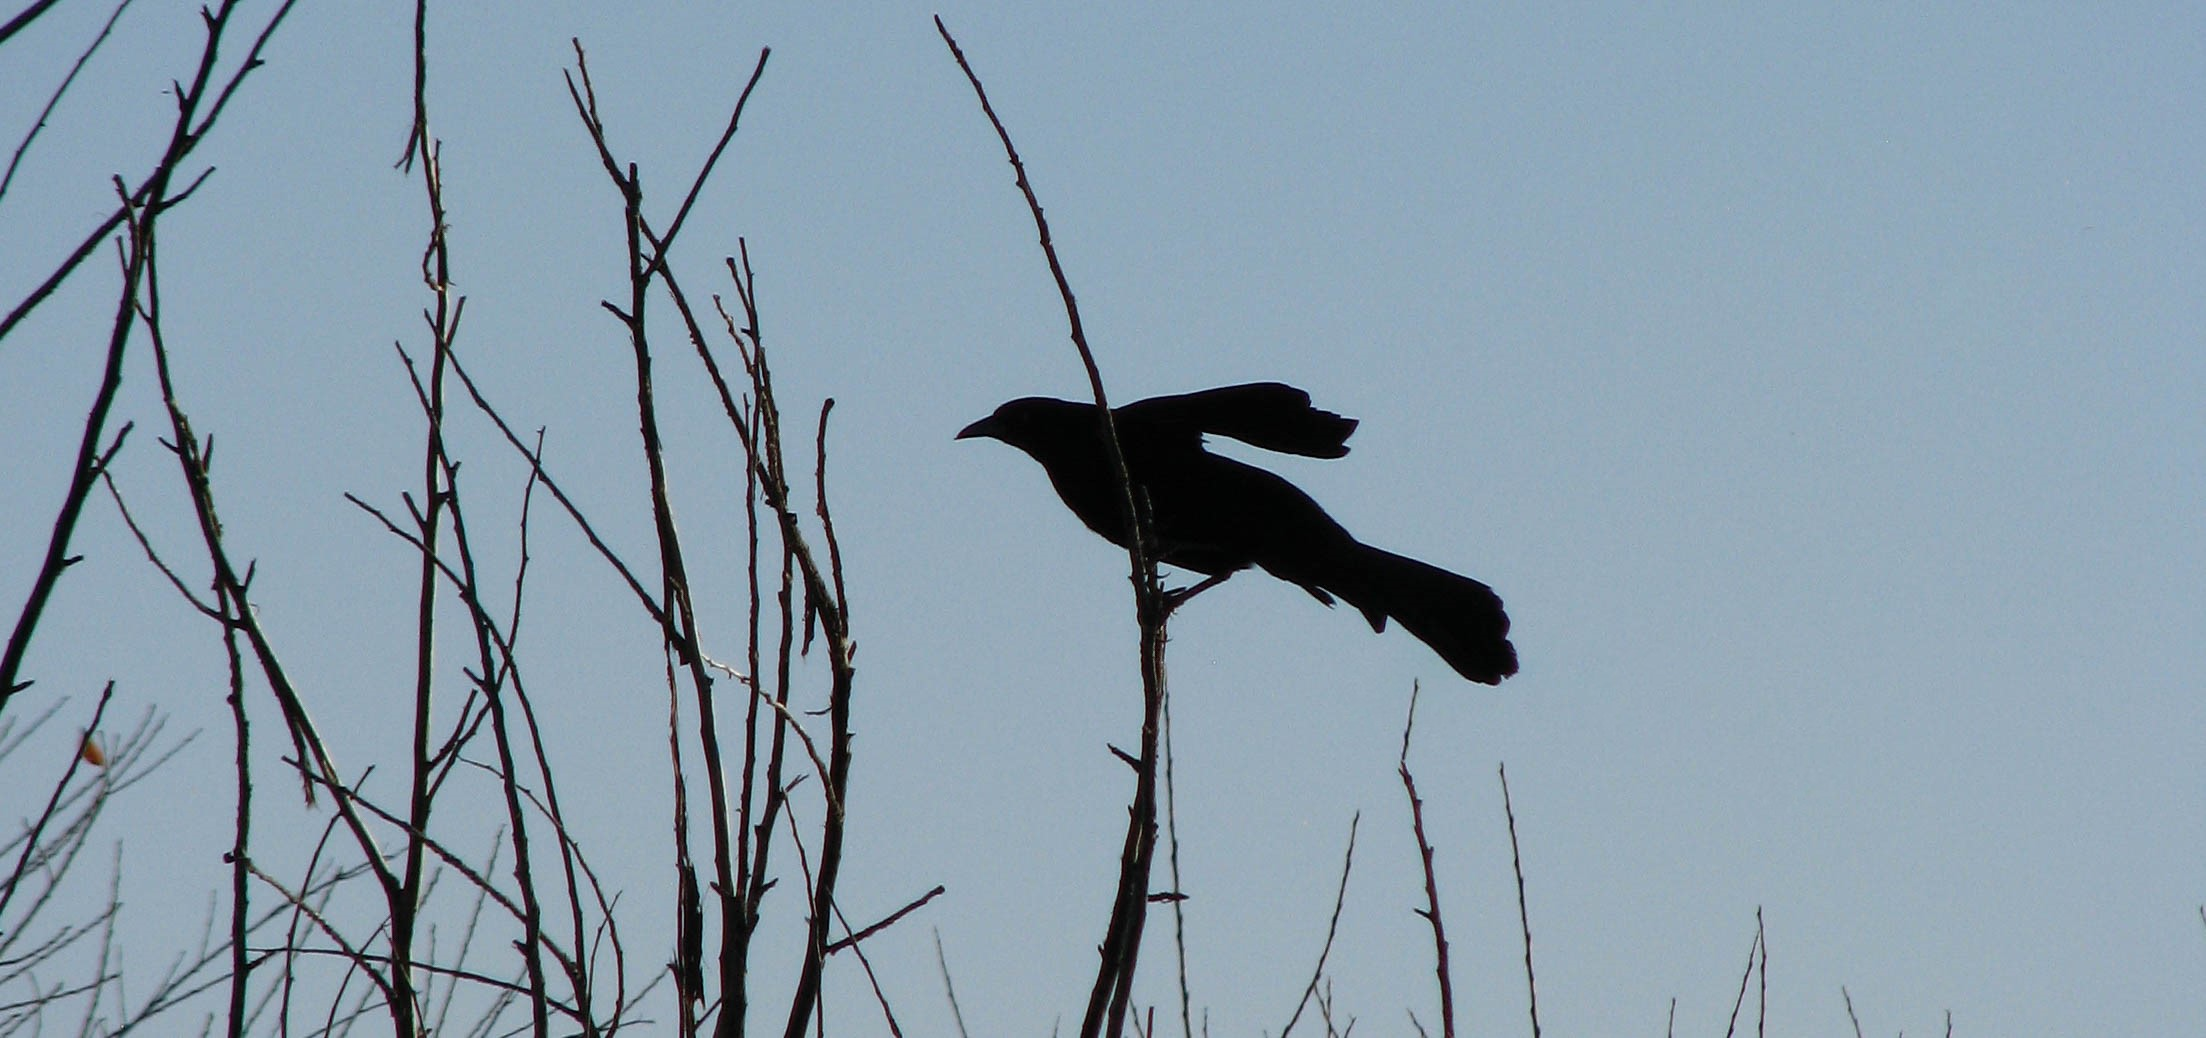 Grackle, Chandler AZ